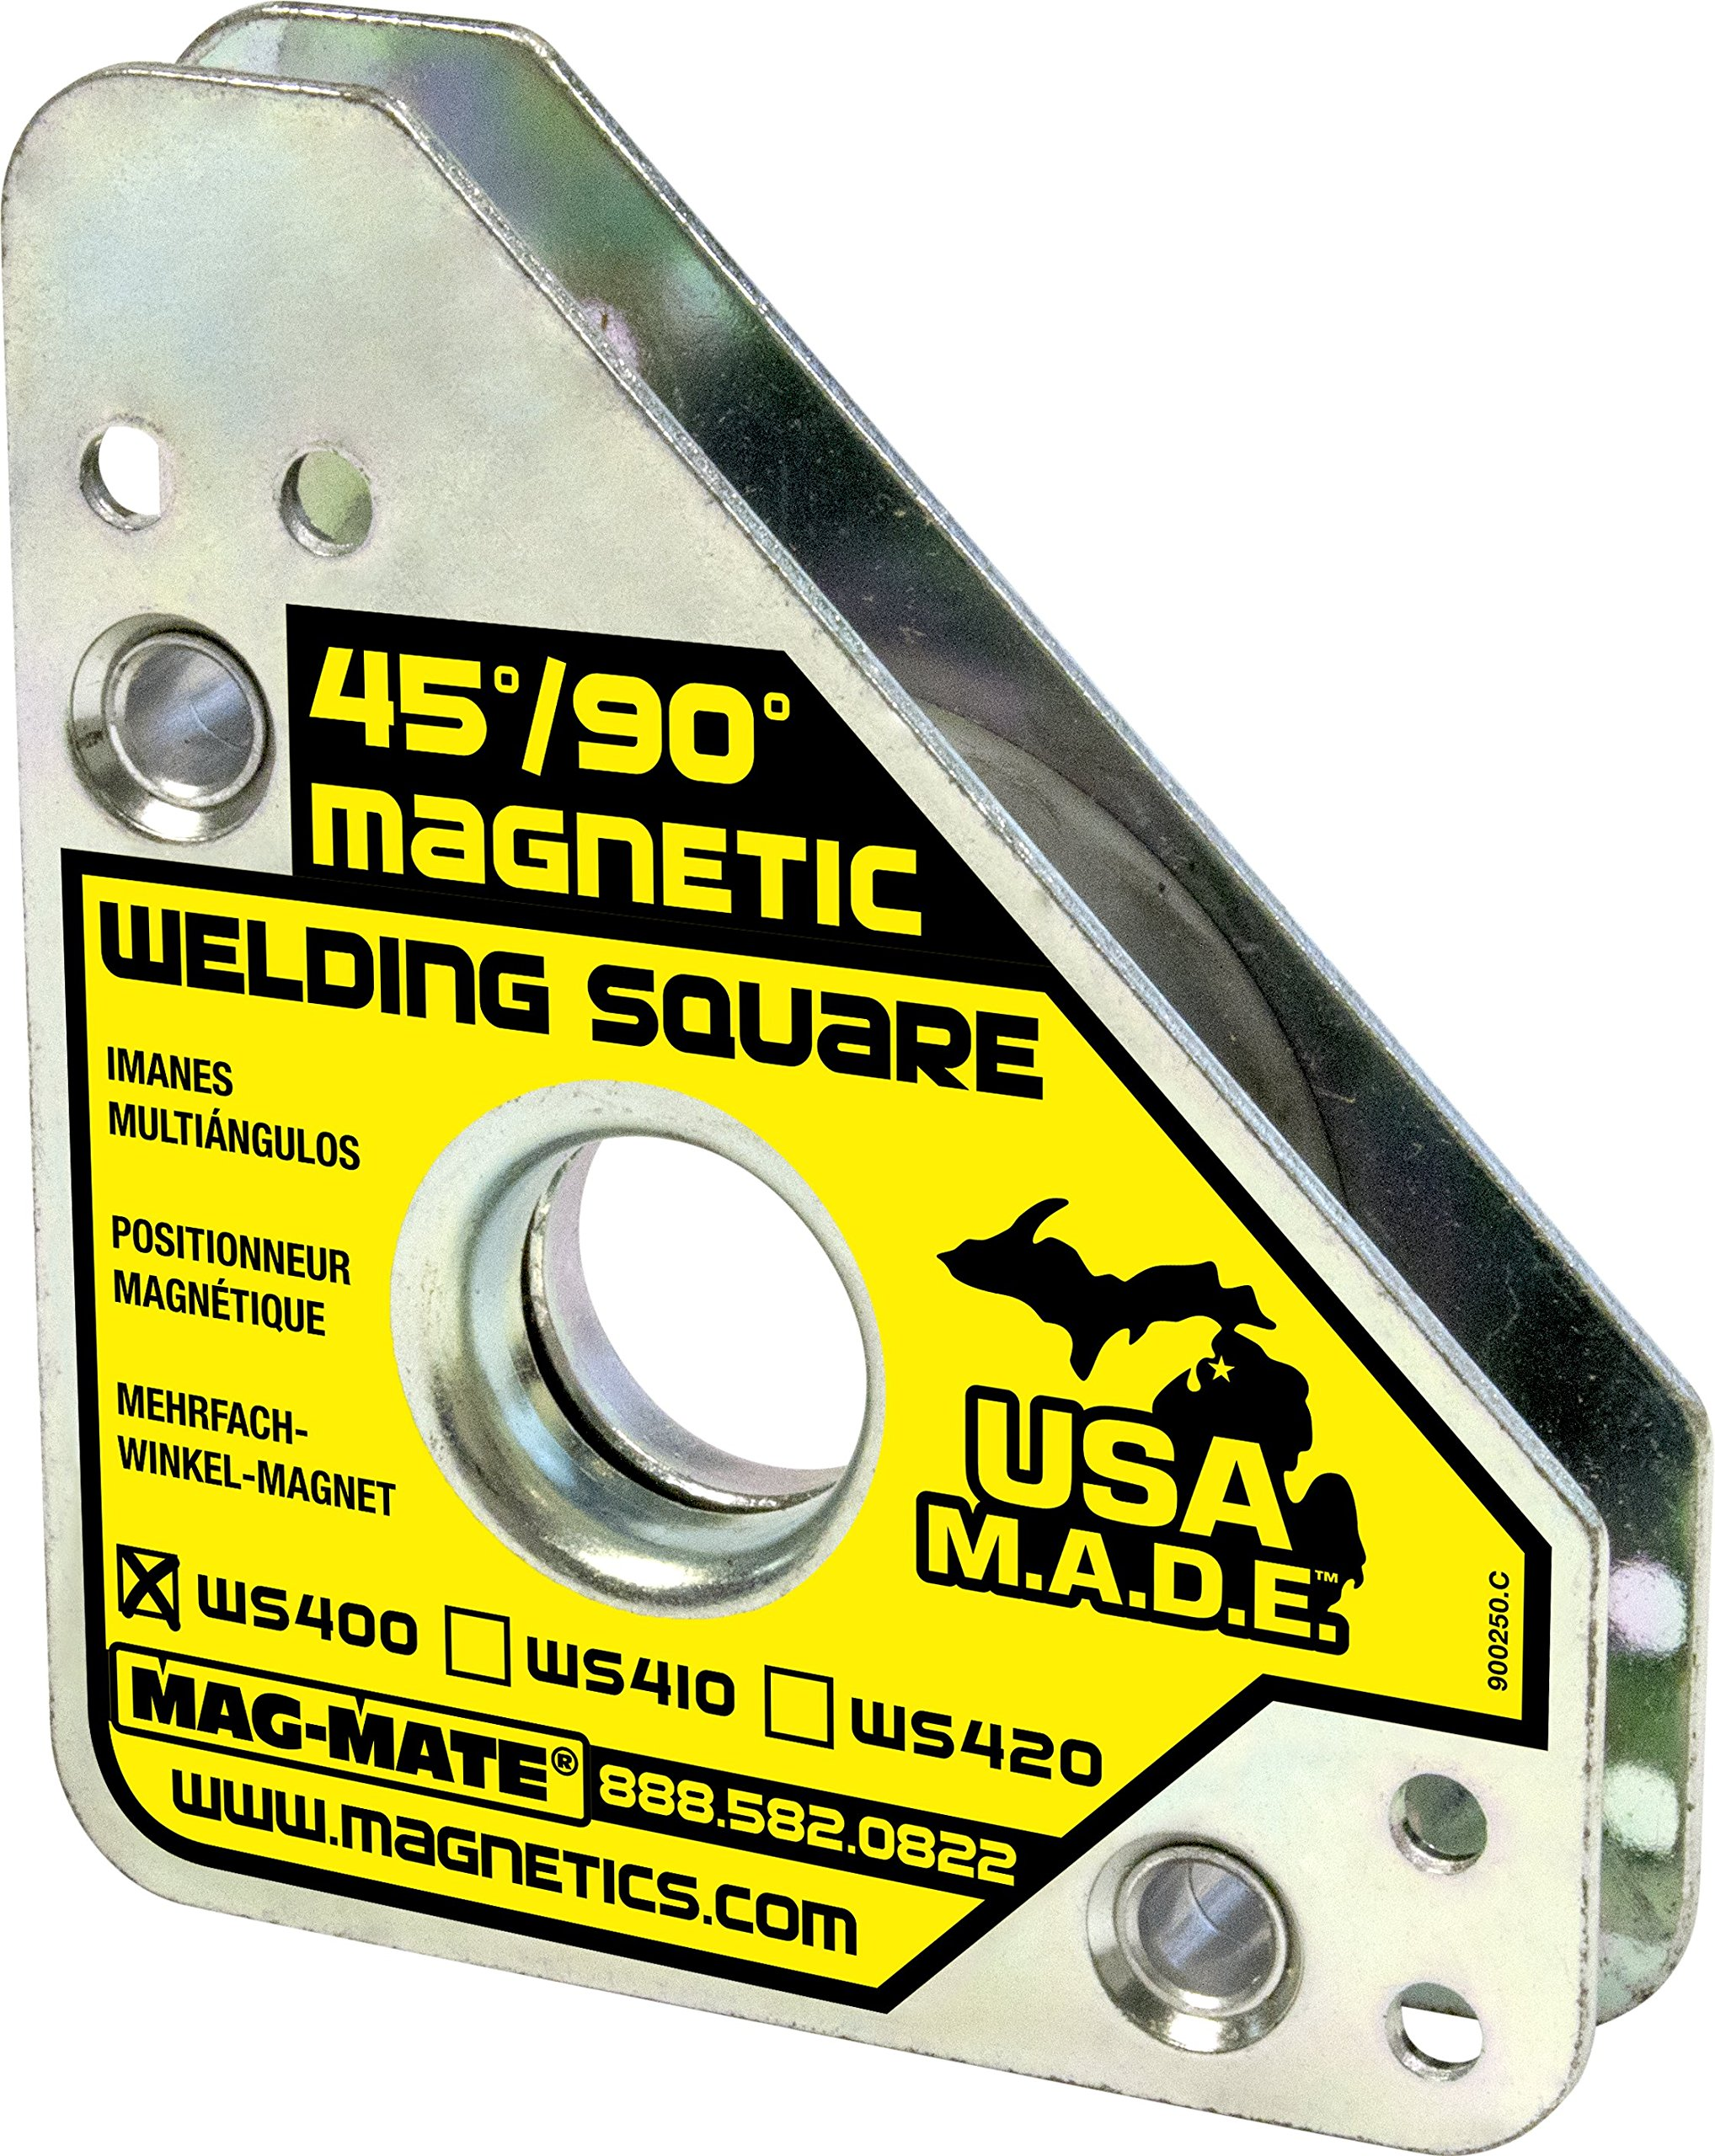 MAG-MATE WS400 Magnetic Welding Square with 75 lb Capacity